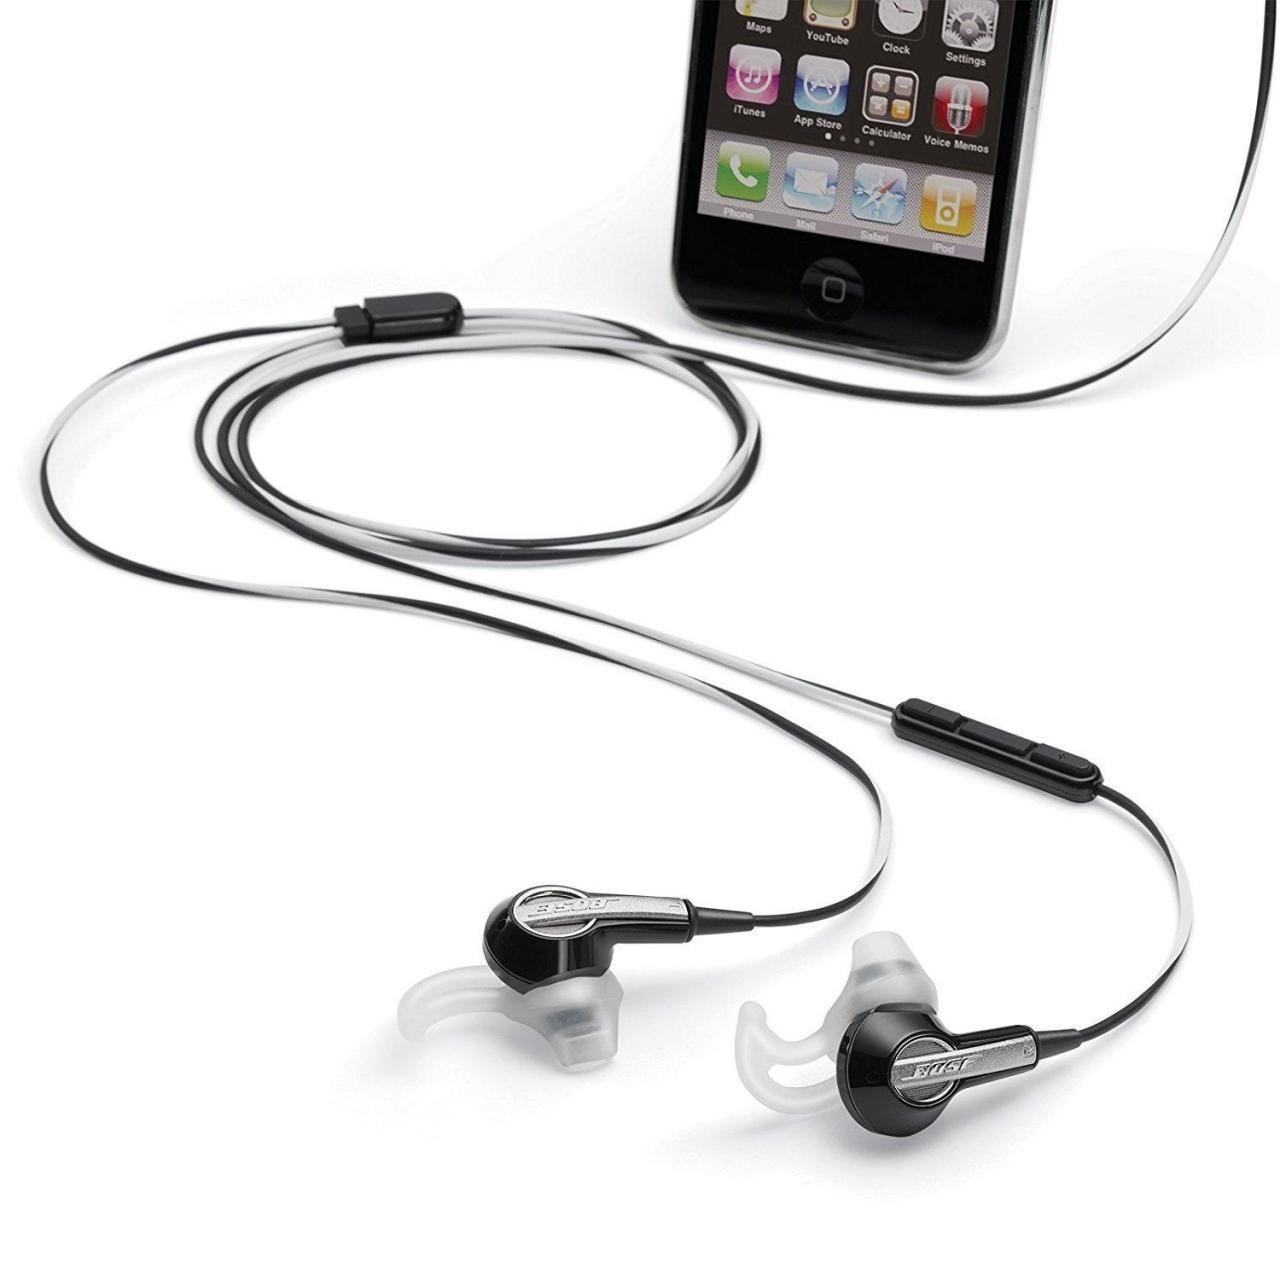 Buy cheap headset headset Product name:BOSE MIE2i Mobile Headset from wholesalers